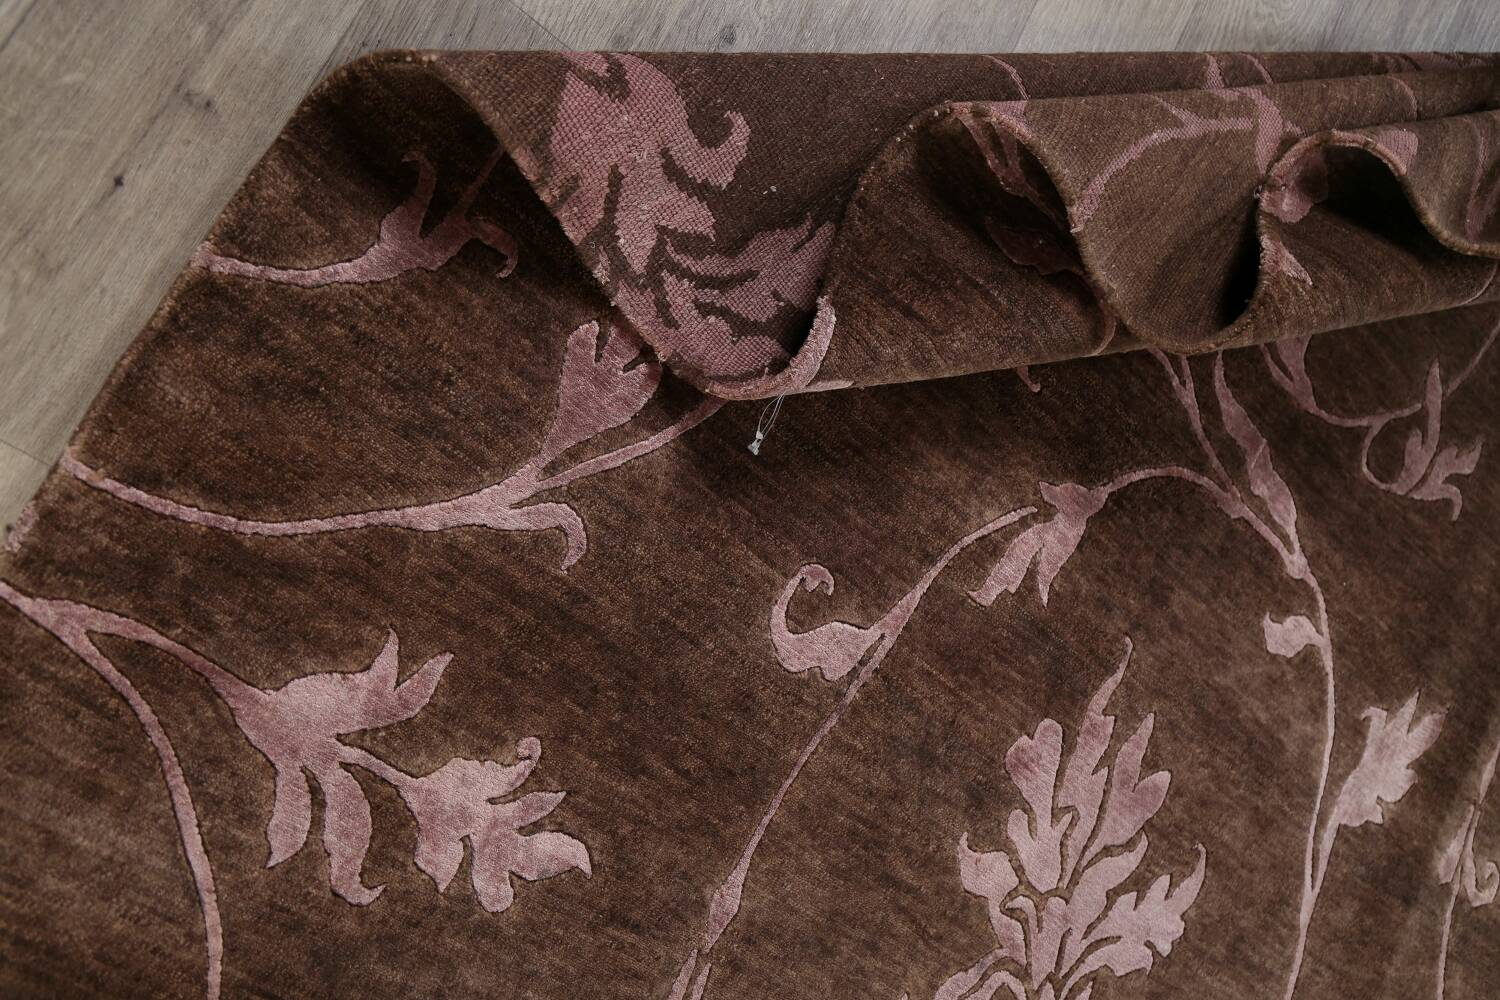 All-Over Floral Brown Art & Craft Oriental Area Rug 8x10 image 16